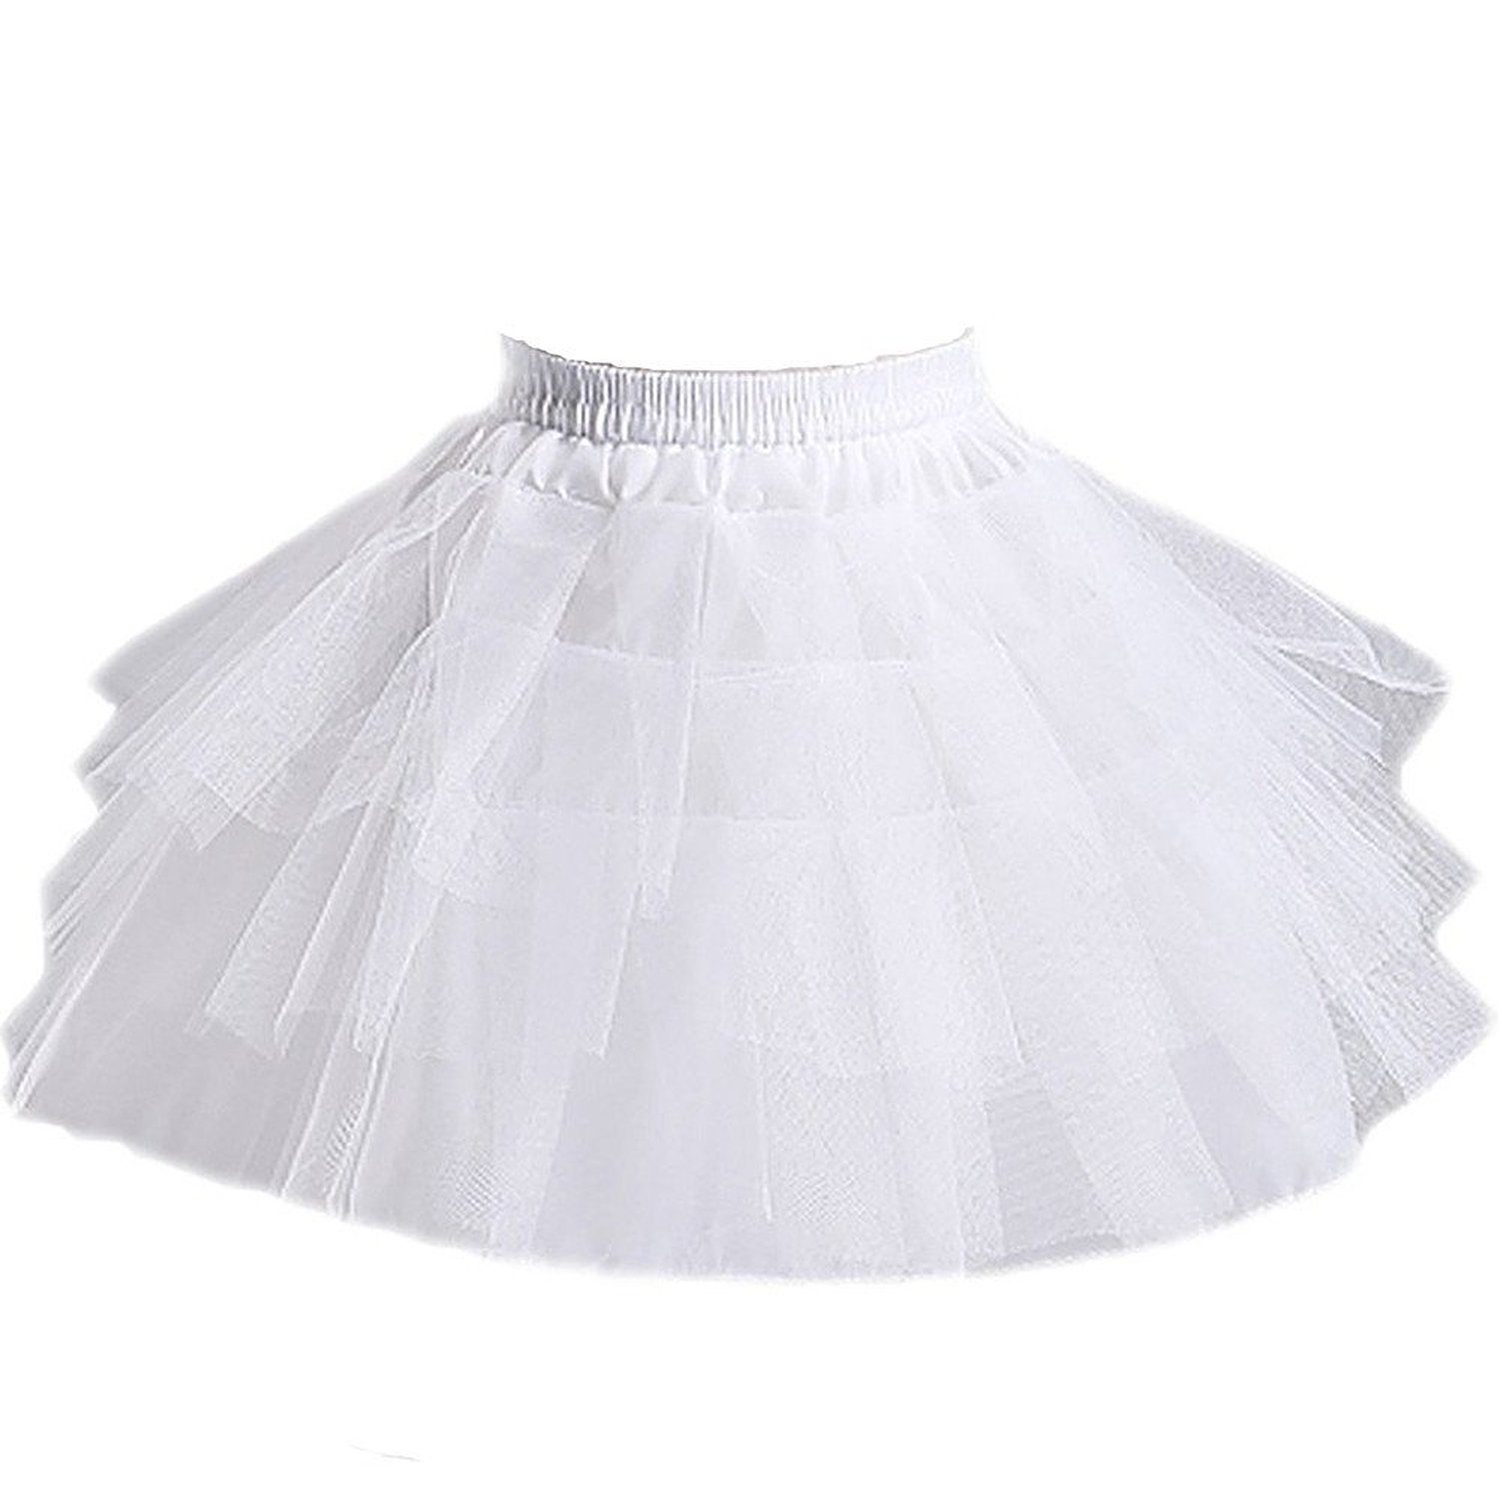 Girls 3 Layers Wedding Flower Girl Petticoat ,White,Large